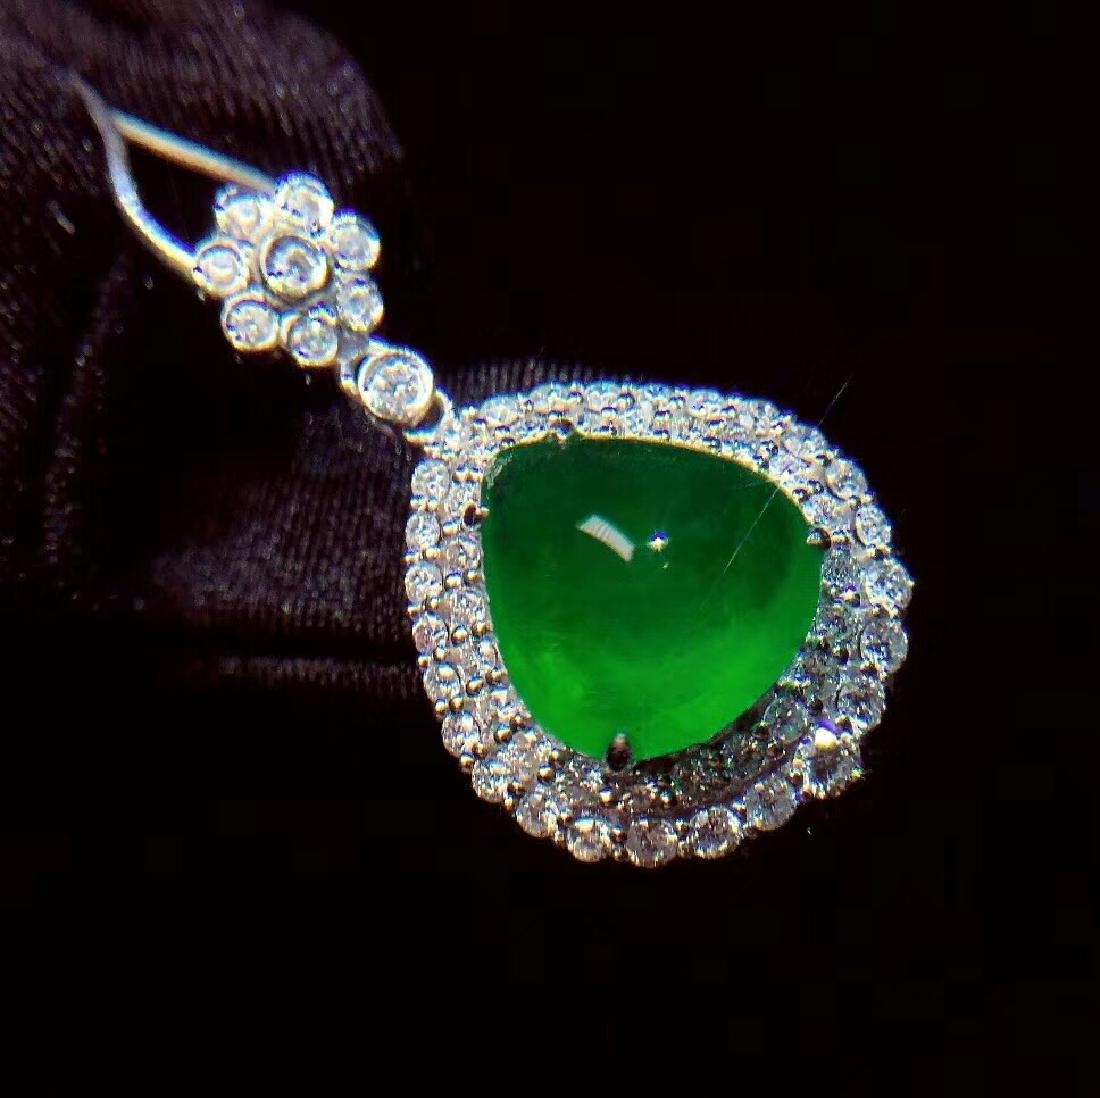 6.1ct Emerald Pendant in 18kt White Gold - 4